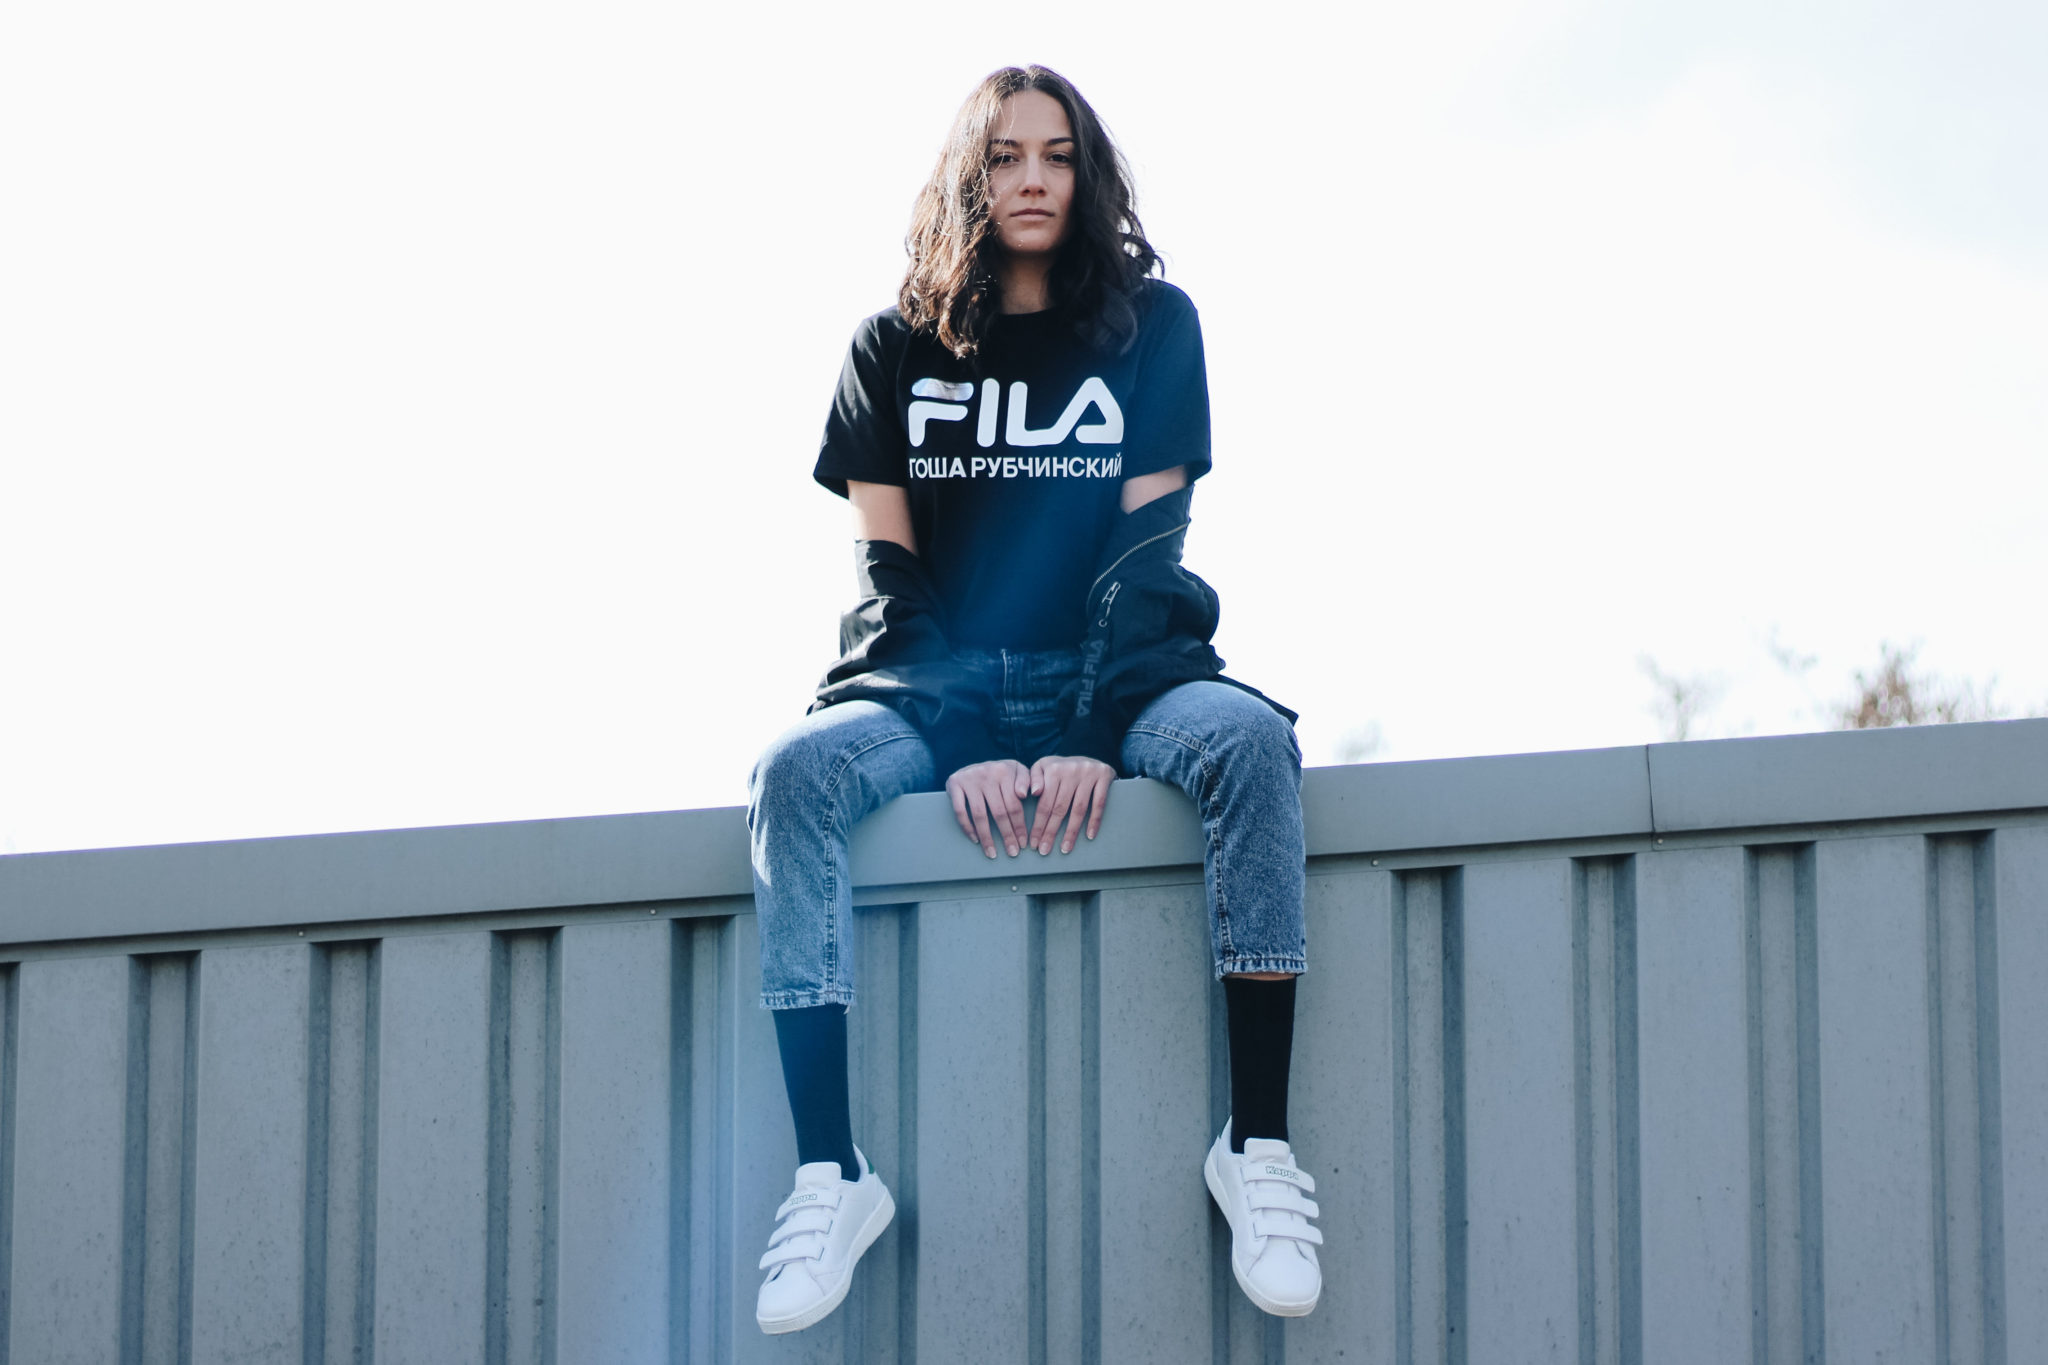 Outfit post by Bulgarian fashion blogger Michaella from Quite a Looker / Gosha Rubchinskiy x FILA t-shirt, Bershka mom jeans, Kappa Sneakers